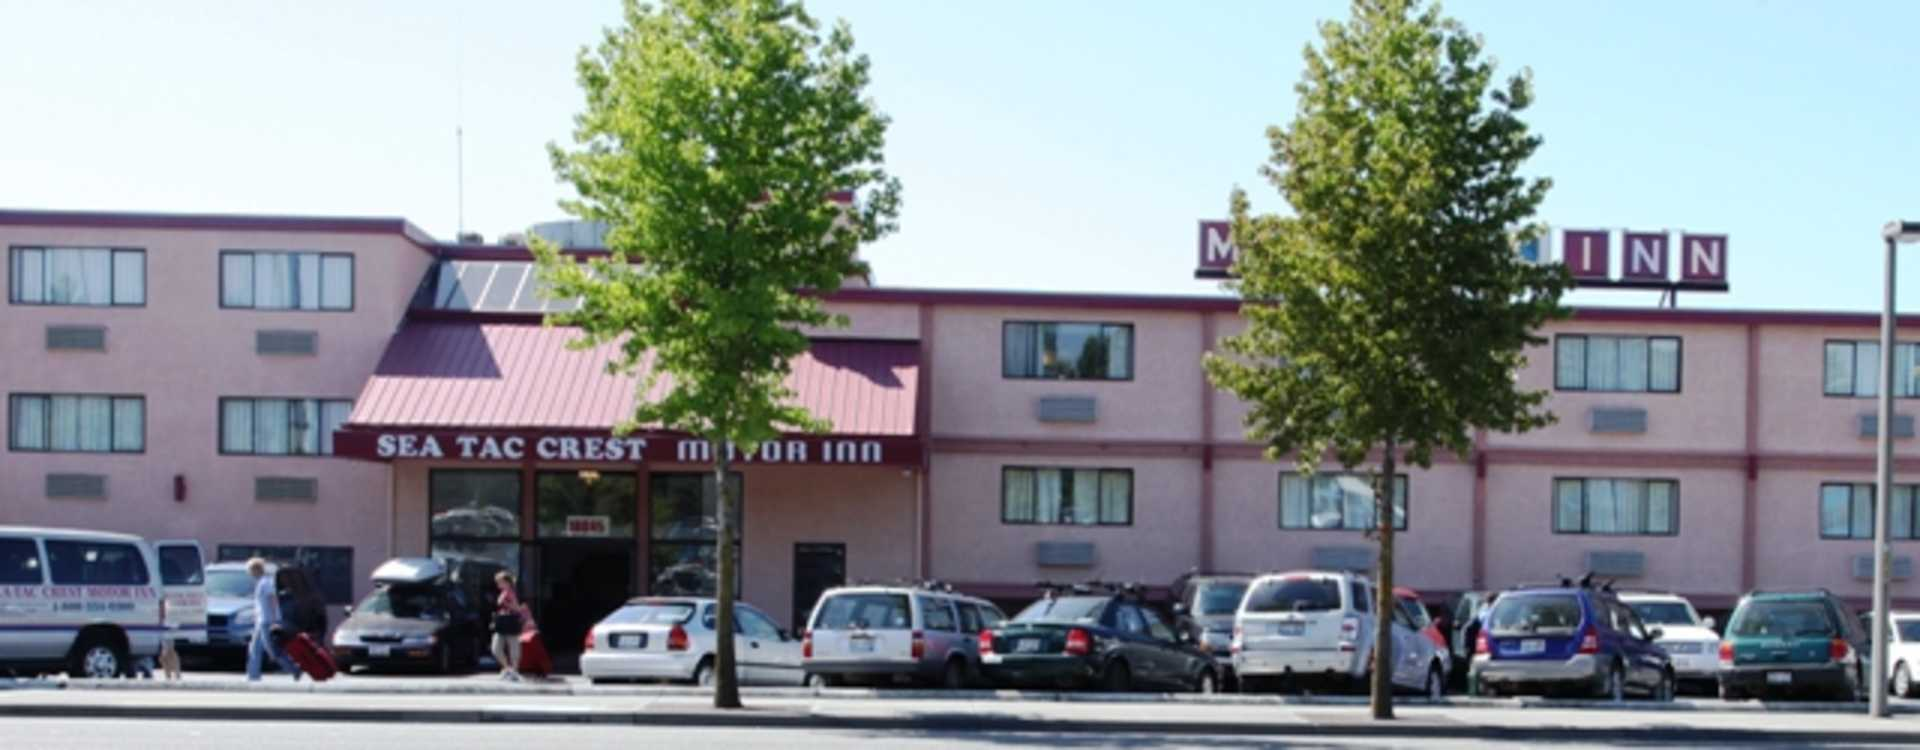 SeaTac_Crest_Motor_Inn_Parking.jpg